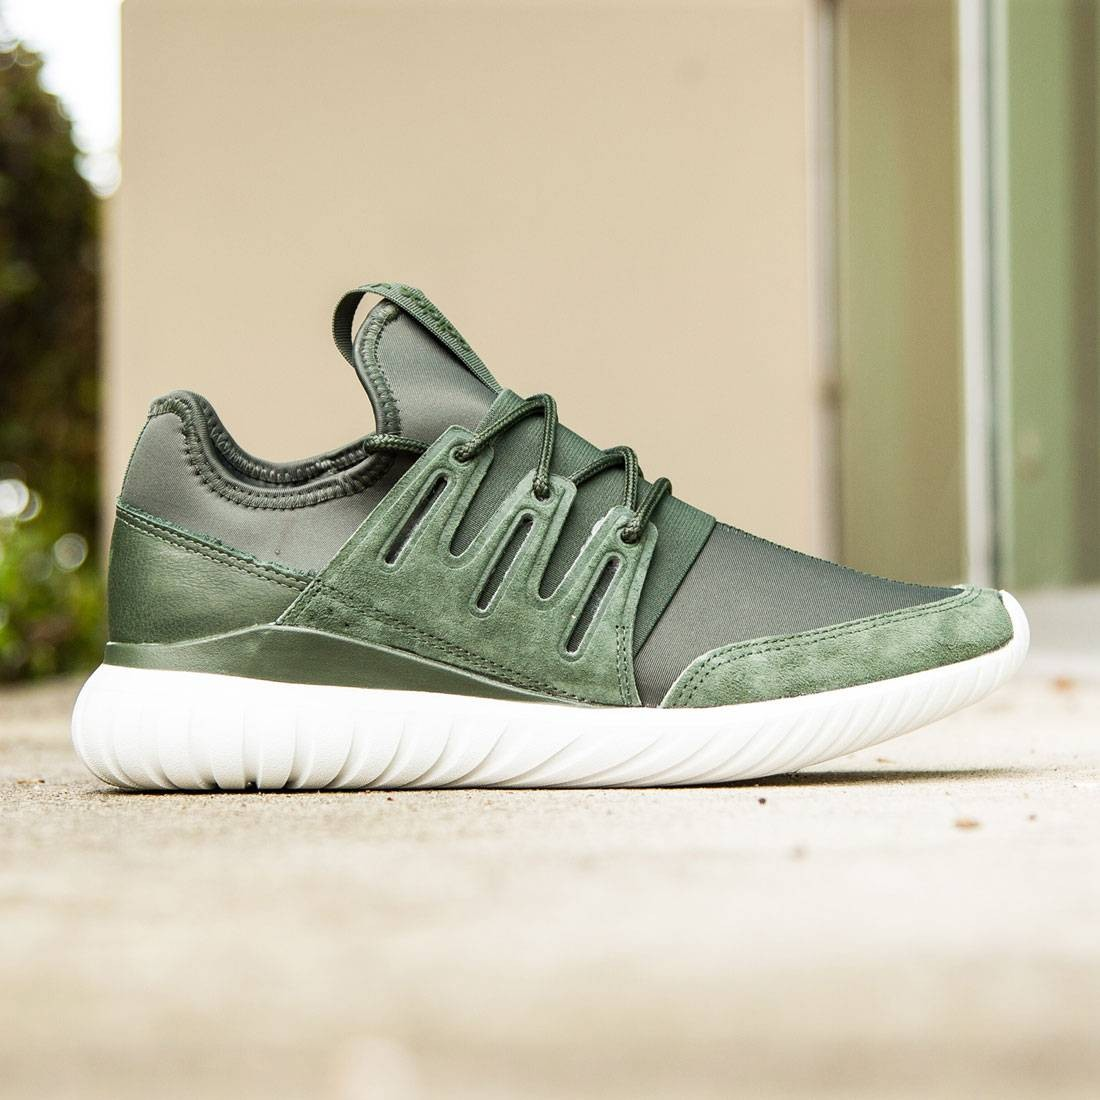 White Radial Crystal Shadow Men Green Olive Tubular Adidas 4q53LRjA